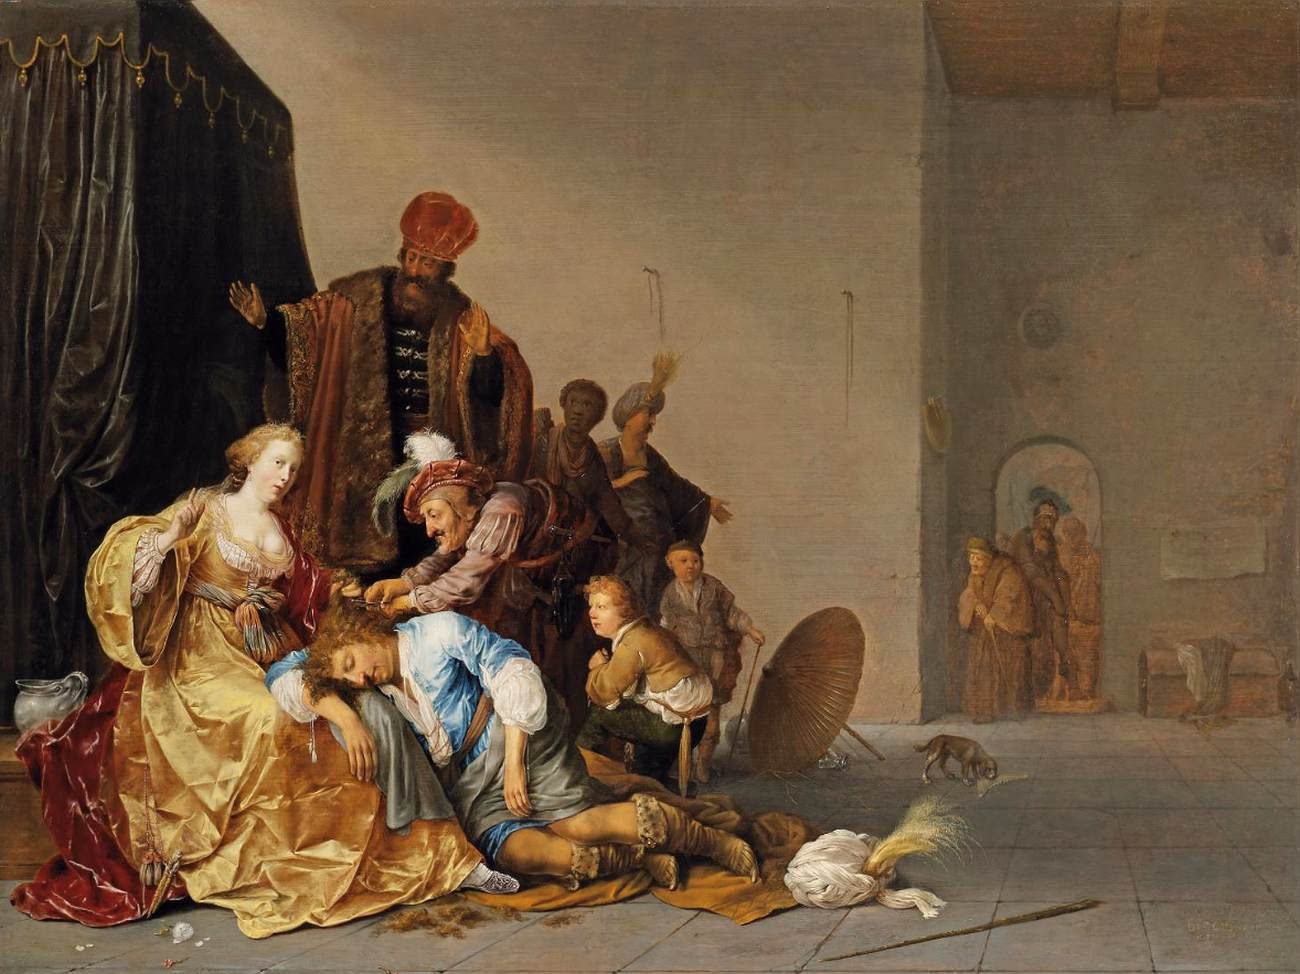 Spencer Alley: Samson & Delilah in the 17th century